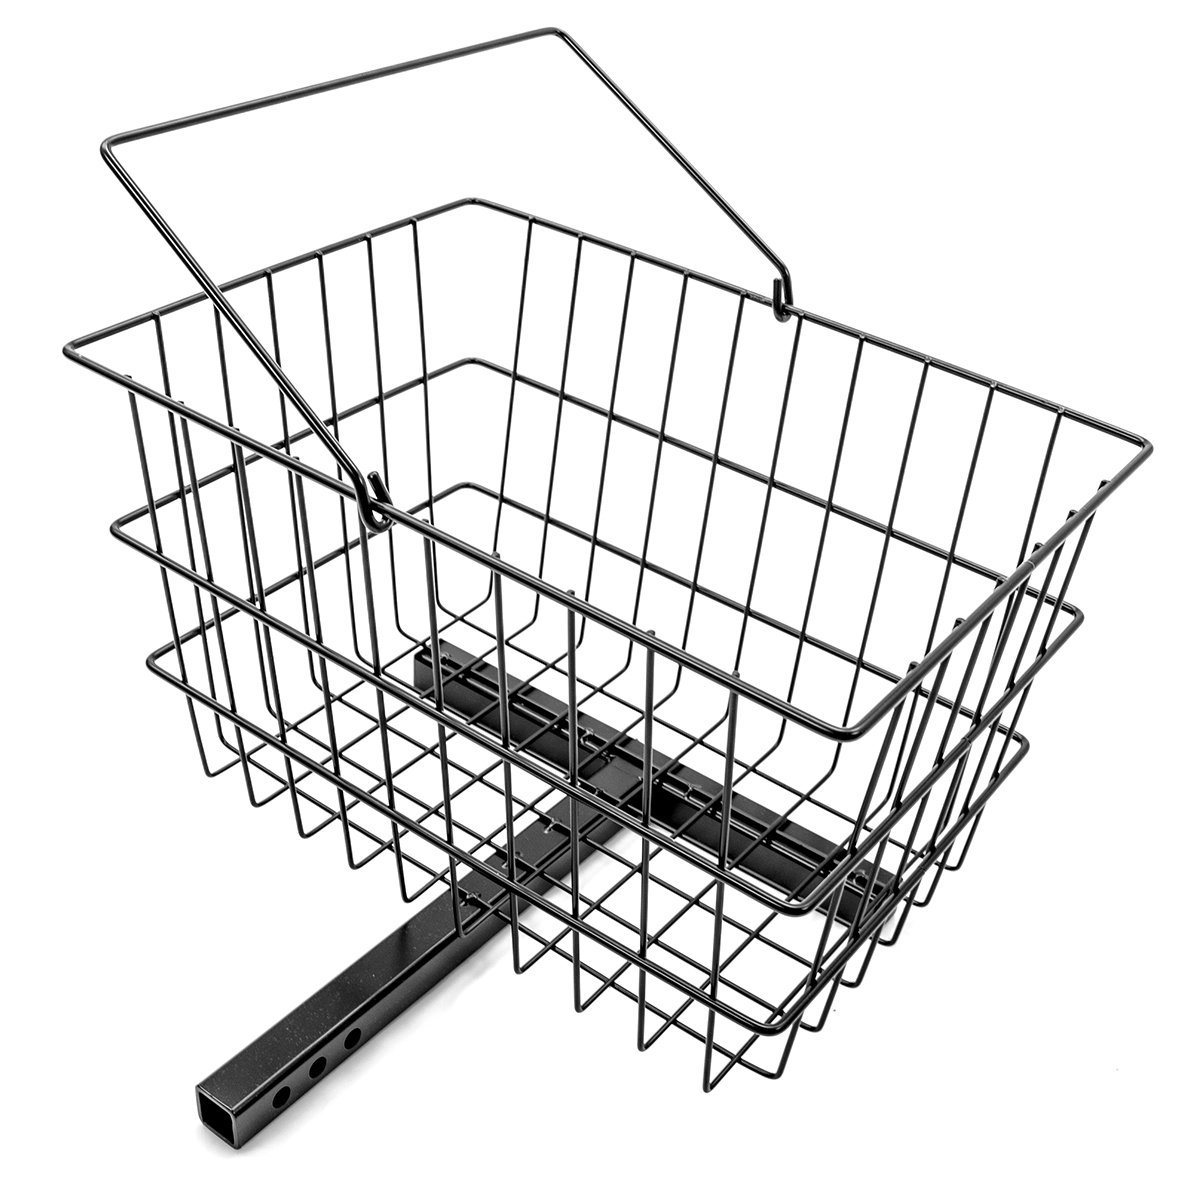 Pride Mobility Scooter Rear Basket Center Support with Free Holding Clevis Pin